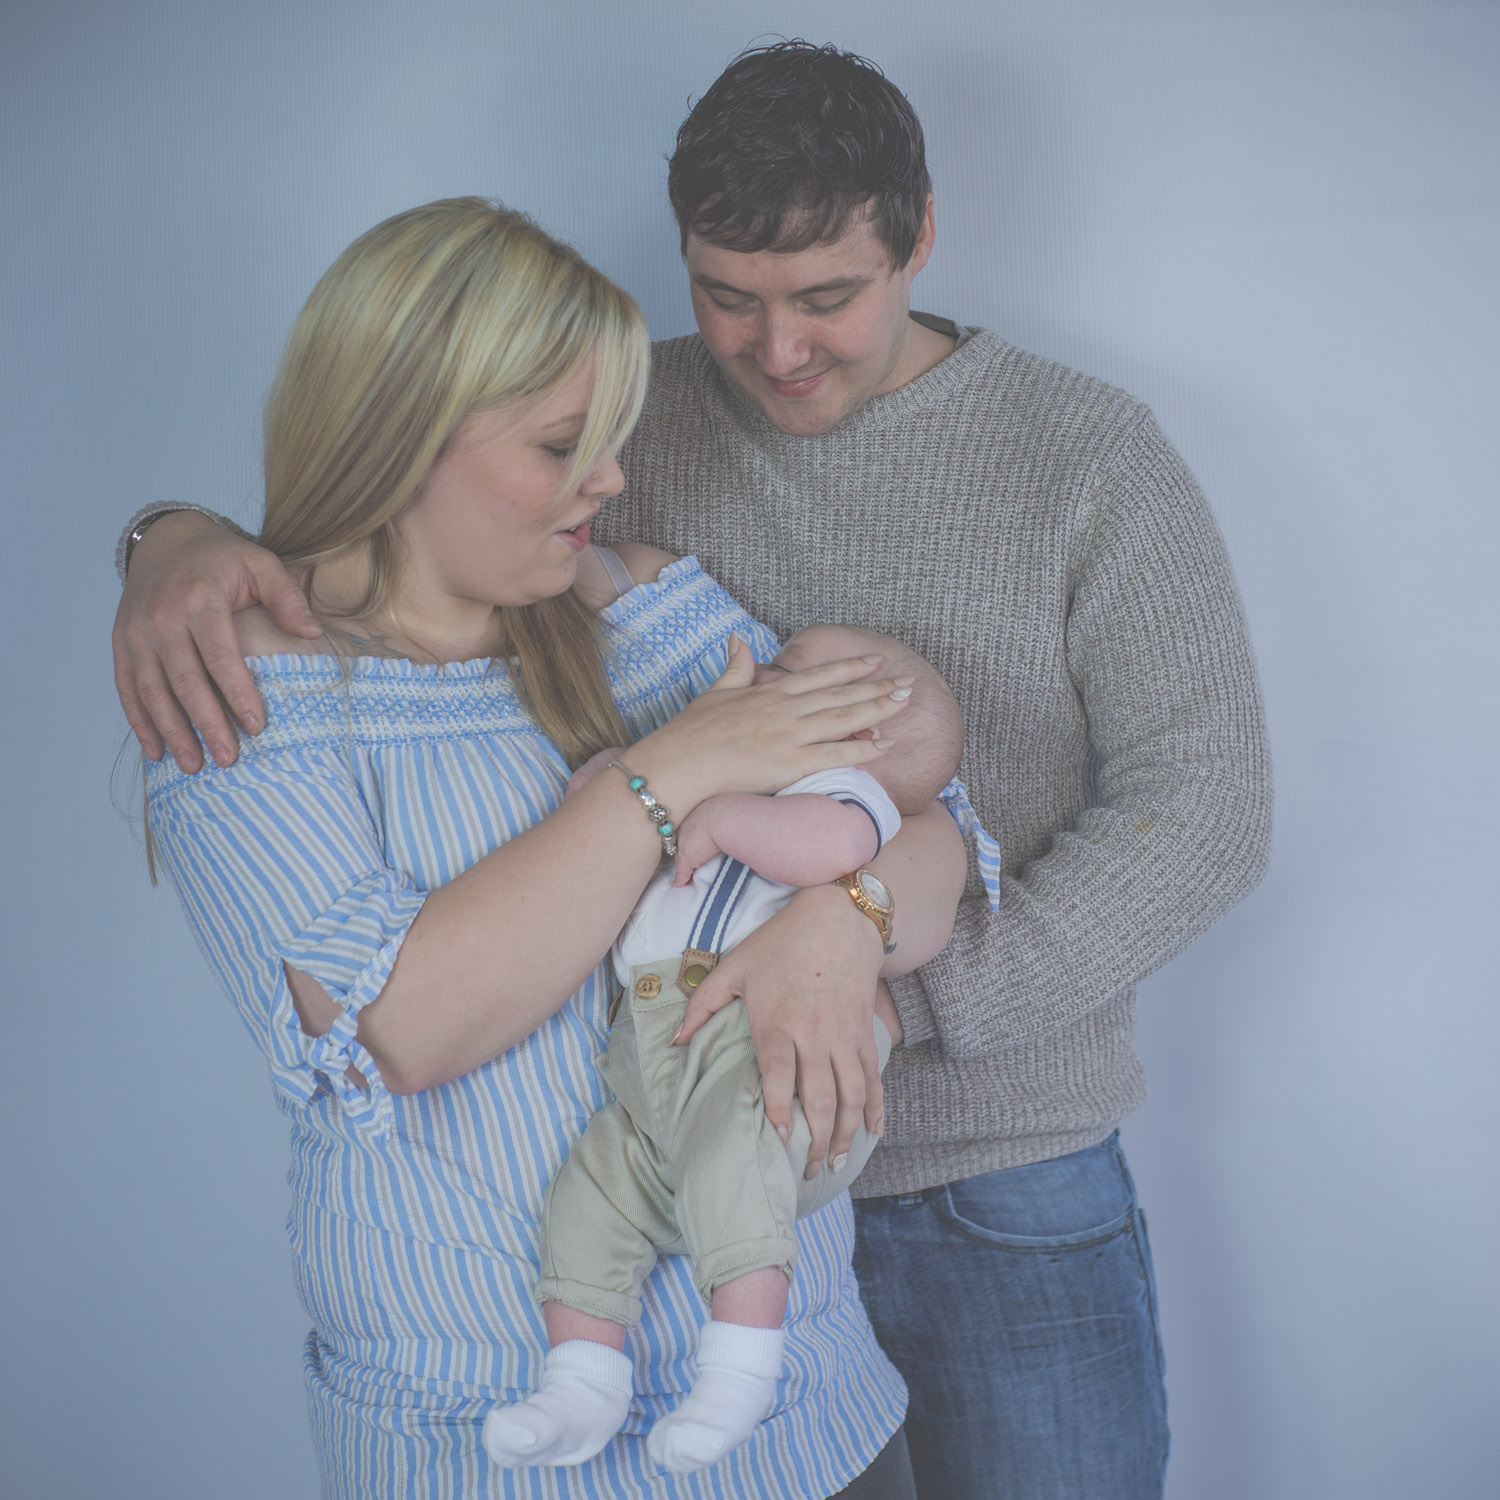 family-baby-portraits-photographer-in-keighley-bradford-leeds-5